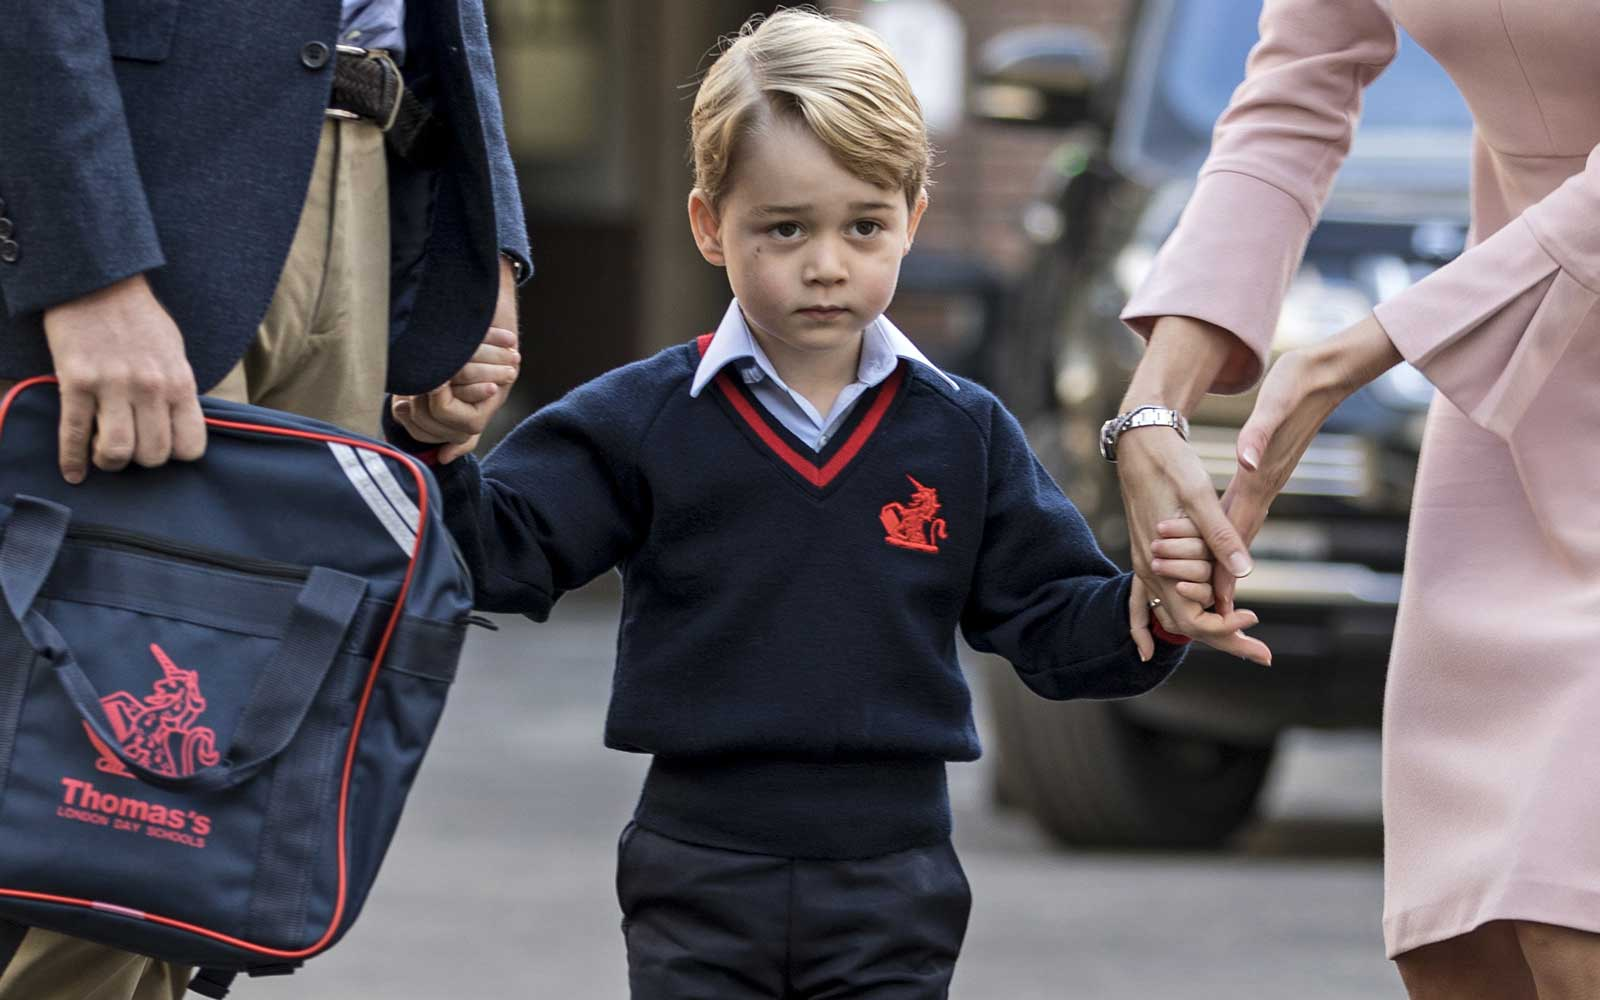 Why You Shouldn't Expect to See Prince George and Princess Charlotte's Back-to-school Photos This Year